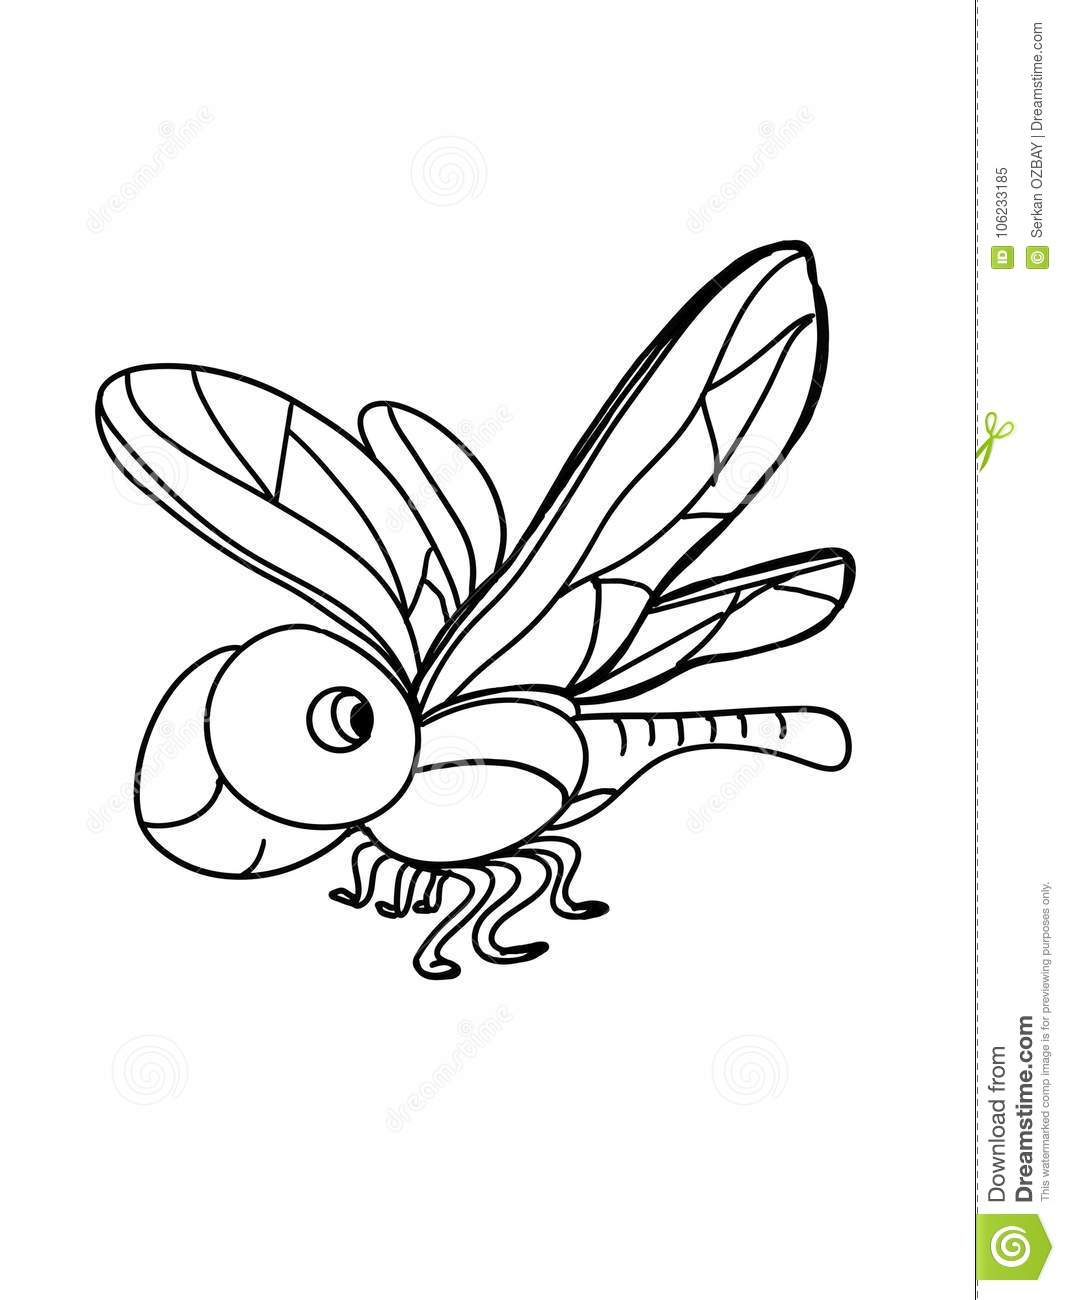 Cute insect drawing - photo#53